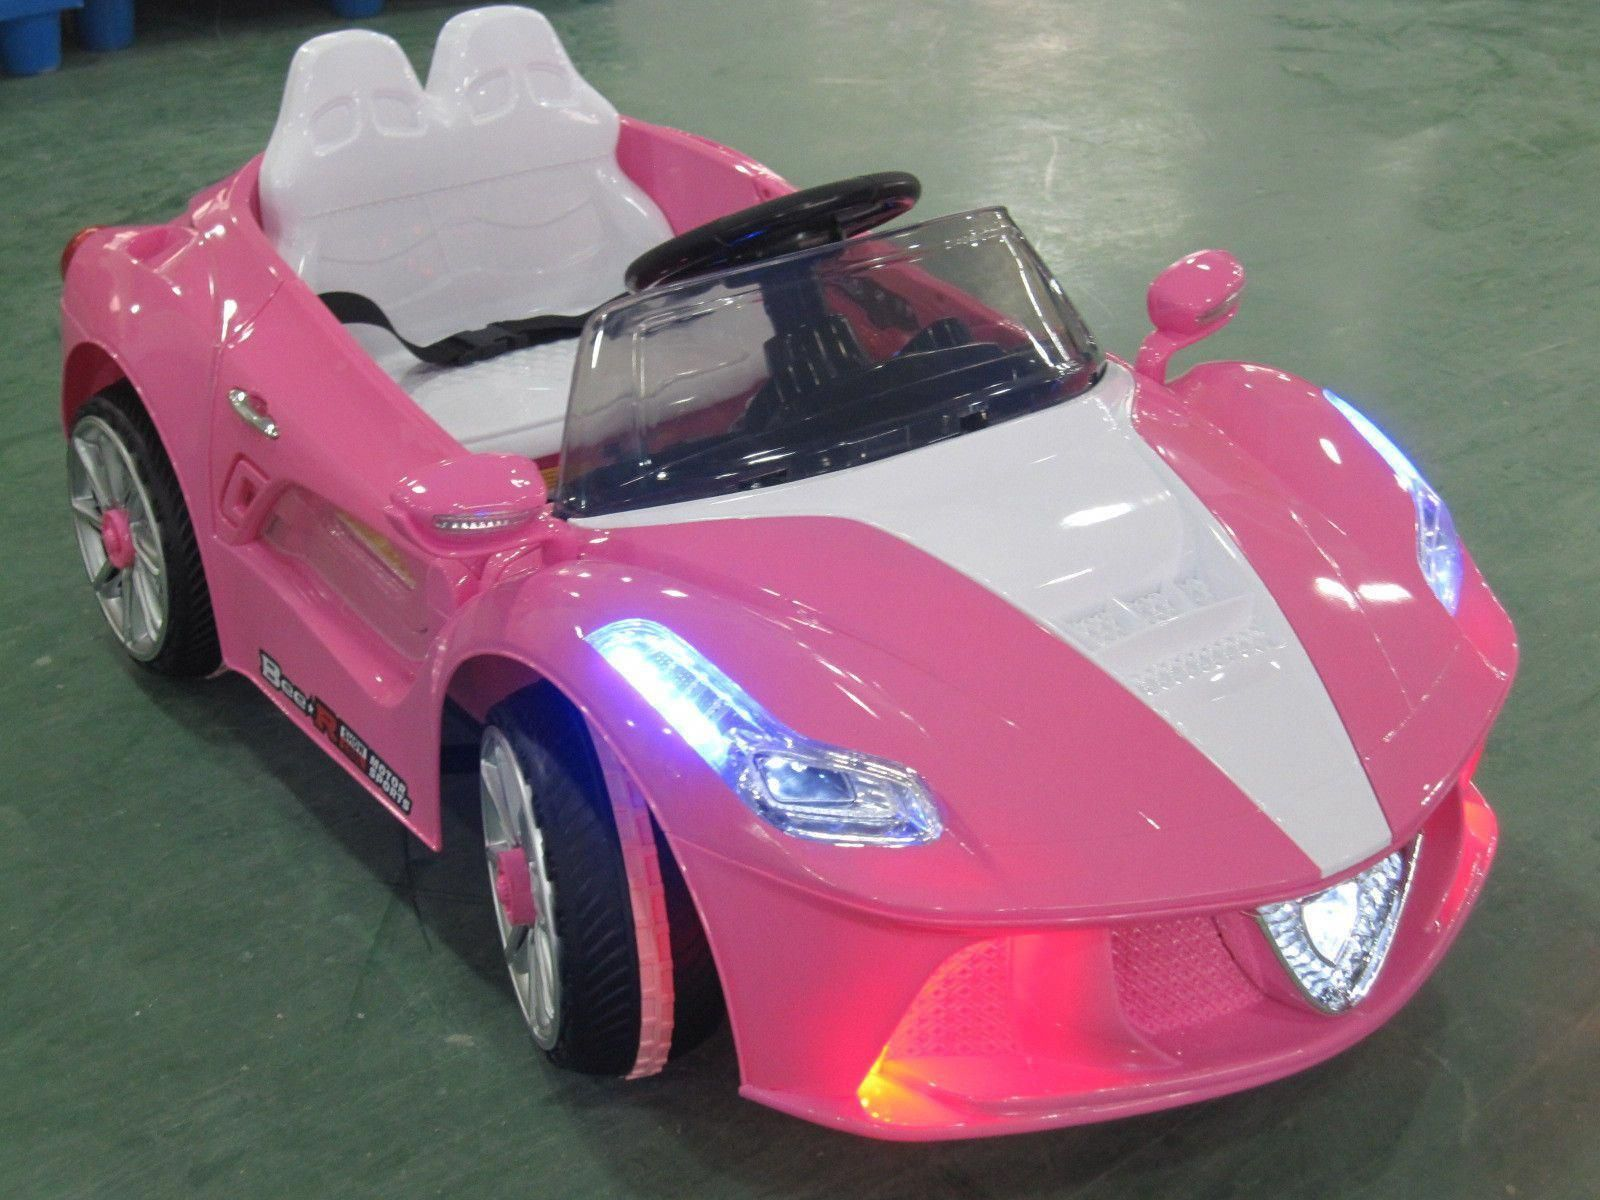 Ferrari Spider Style Kids Ride-On Car MP3 12V Battery Power Wheels R/C Parental Remote | Pink #FerrariPink #pinkferrari Ferrari Spider Style Kids Ride-On Car MP3 12V Battery Power Wheels R/C Parental Remote | Pink #FerrariPink #pinkferrari Ferrari Spider Style Kids Ride-On Car MP3 12V Battery Power Wheels R/C Parental Remote | Pink #FerrariPink #pinkferrari Ferrari Spider Style Kids Ride-On Car MP3 12V Battery Power Wheels R/C Parental Remote | Pink #FerrariPink #pinkferrari